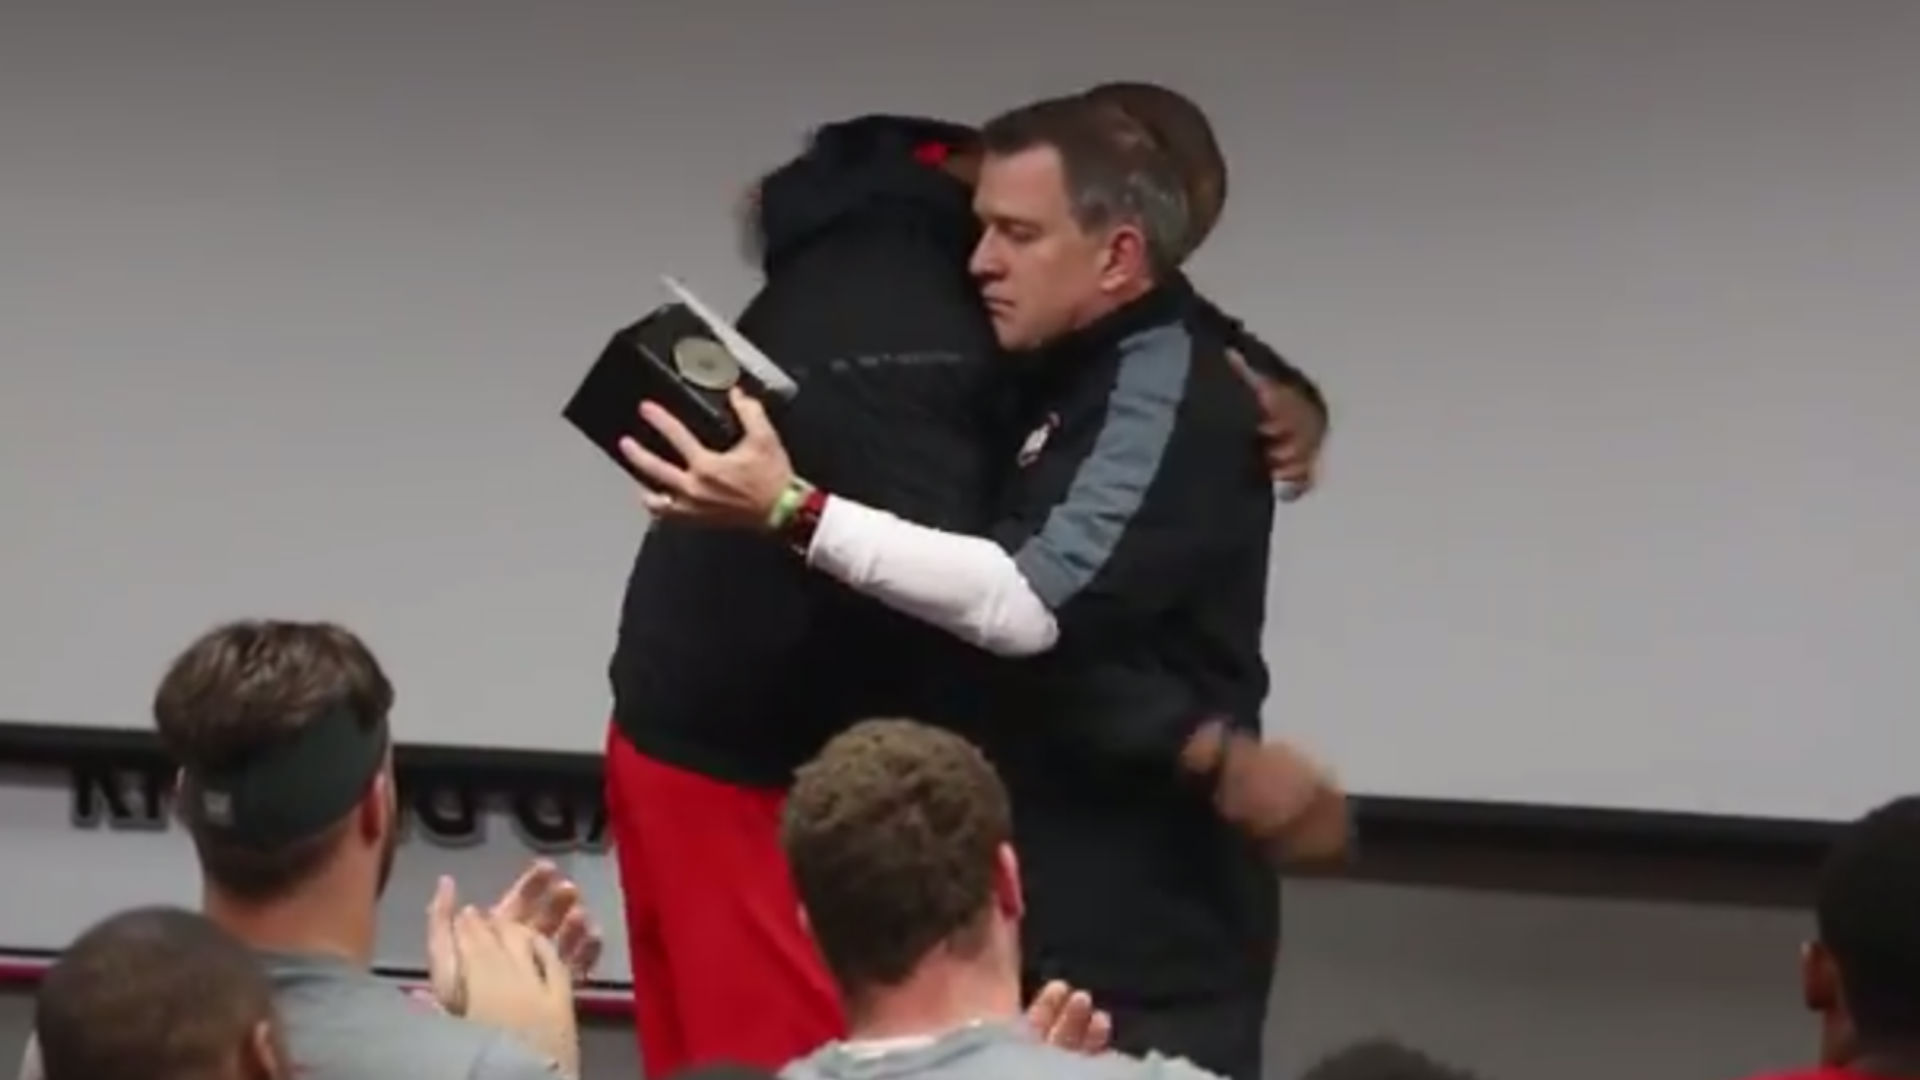 Ohio State's championship ring presentation gets emotional